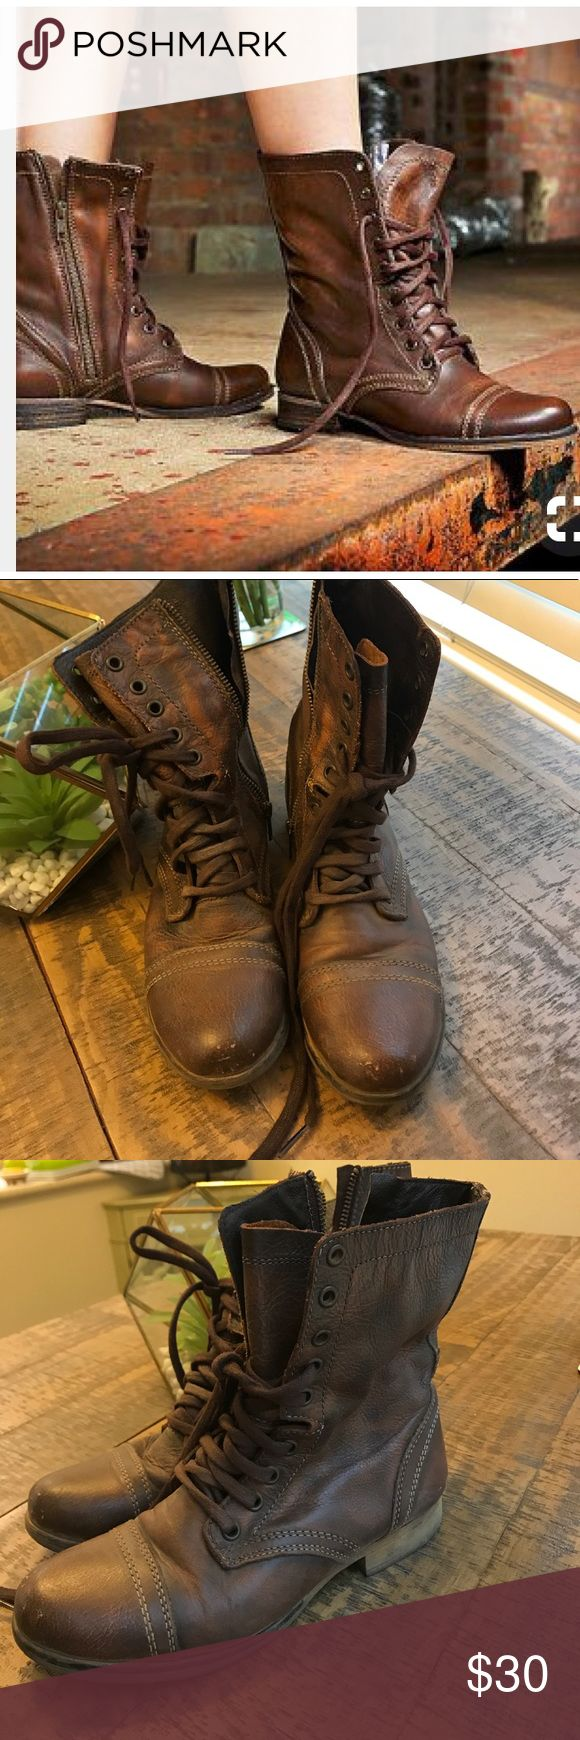 Final Sale🎉🎉Steven Madden Troopa Combat Boots🍂 Final Sale 🍁🌾Leather Troppa Comabt boots by Steve Madden. Worn slightly see photos. Perfect for fall and winter. Please ask questions. No tags or trades. All sales final. Steve Madden Shoes Combat & Moto Boots